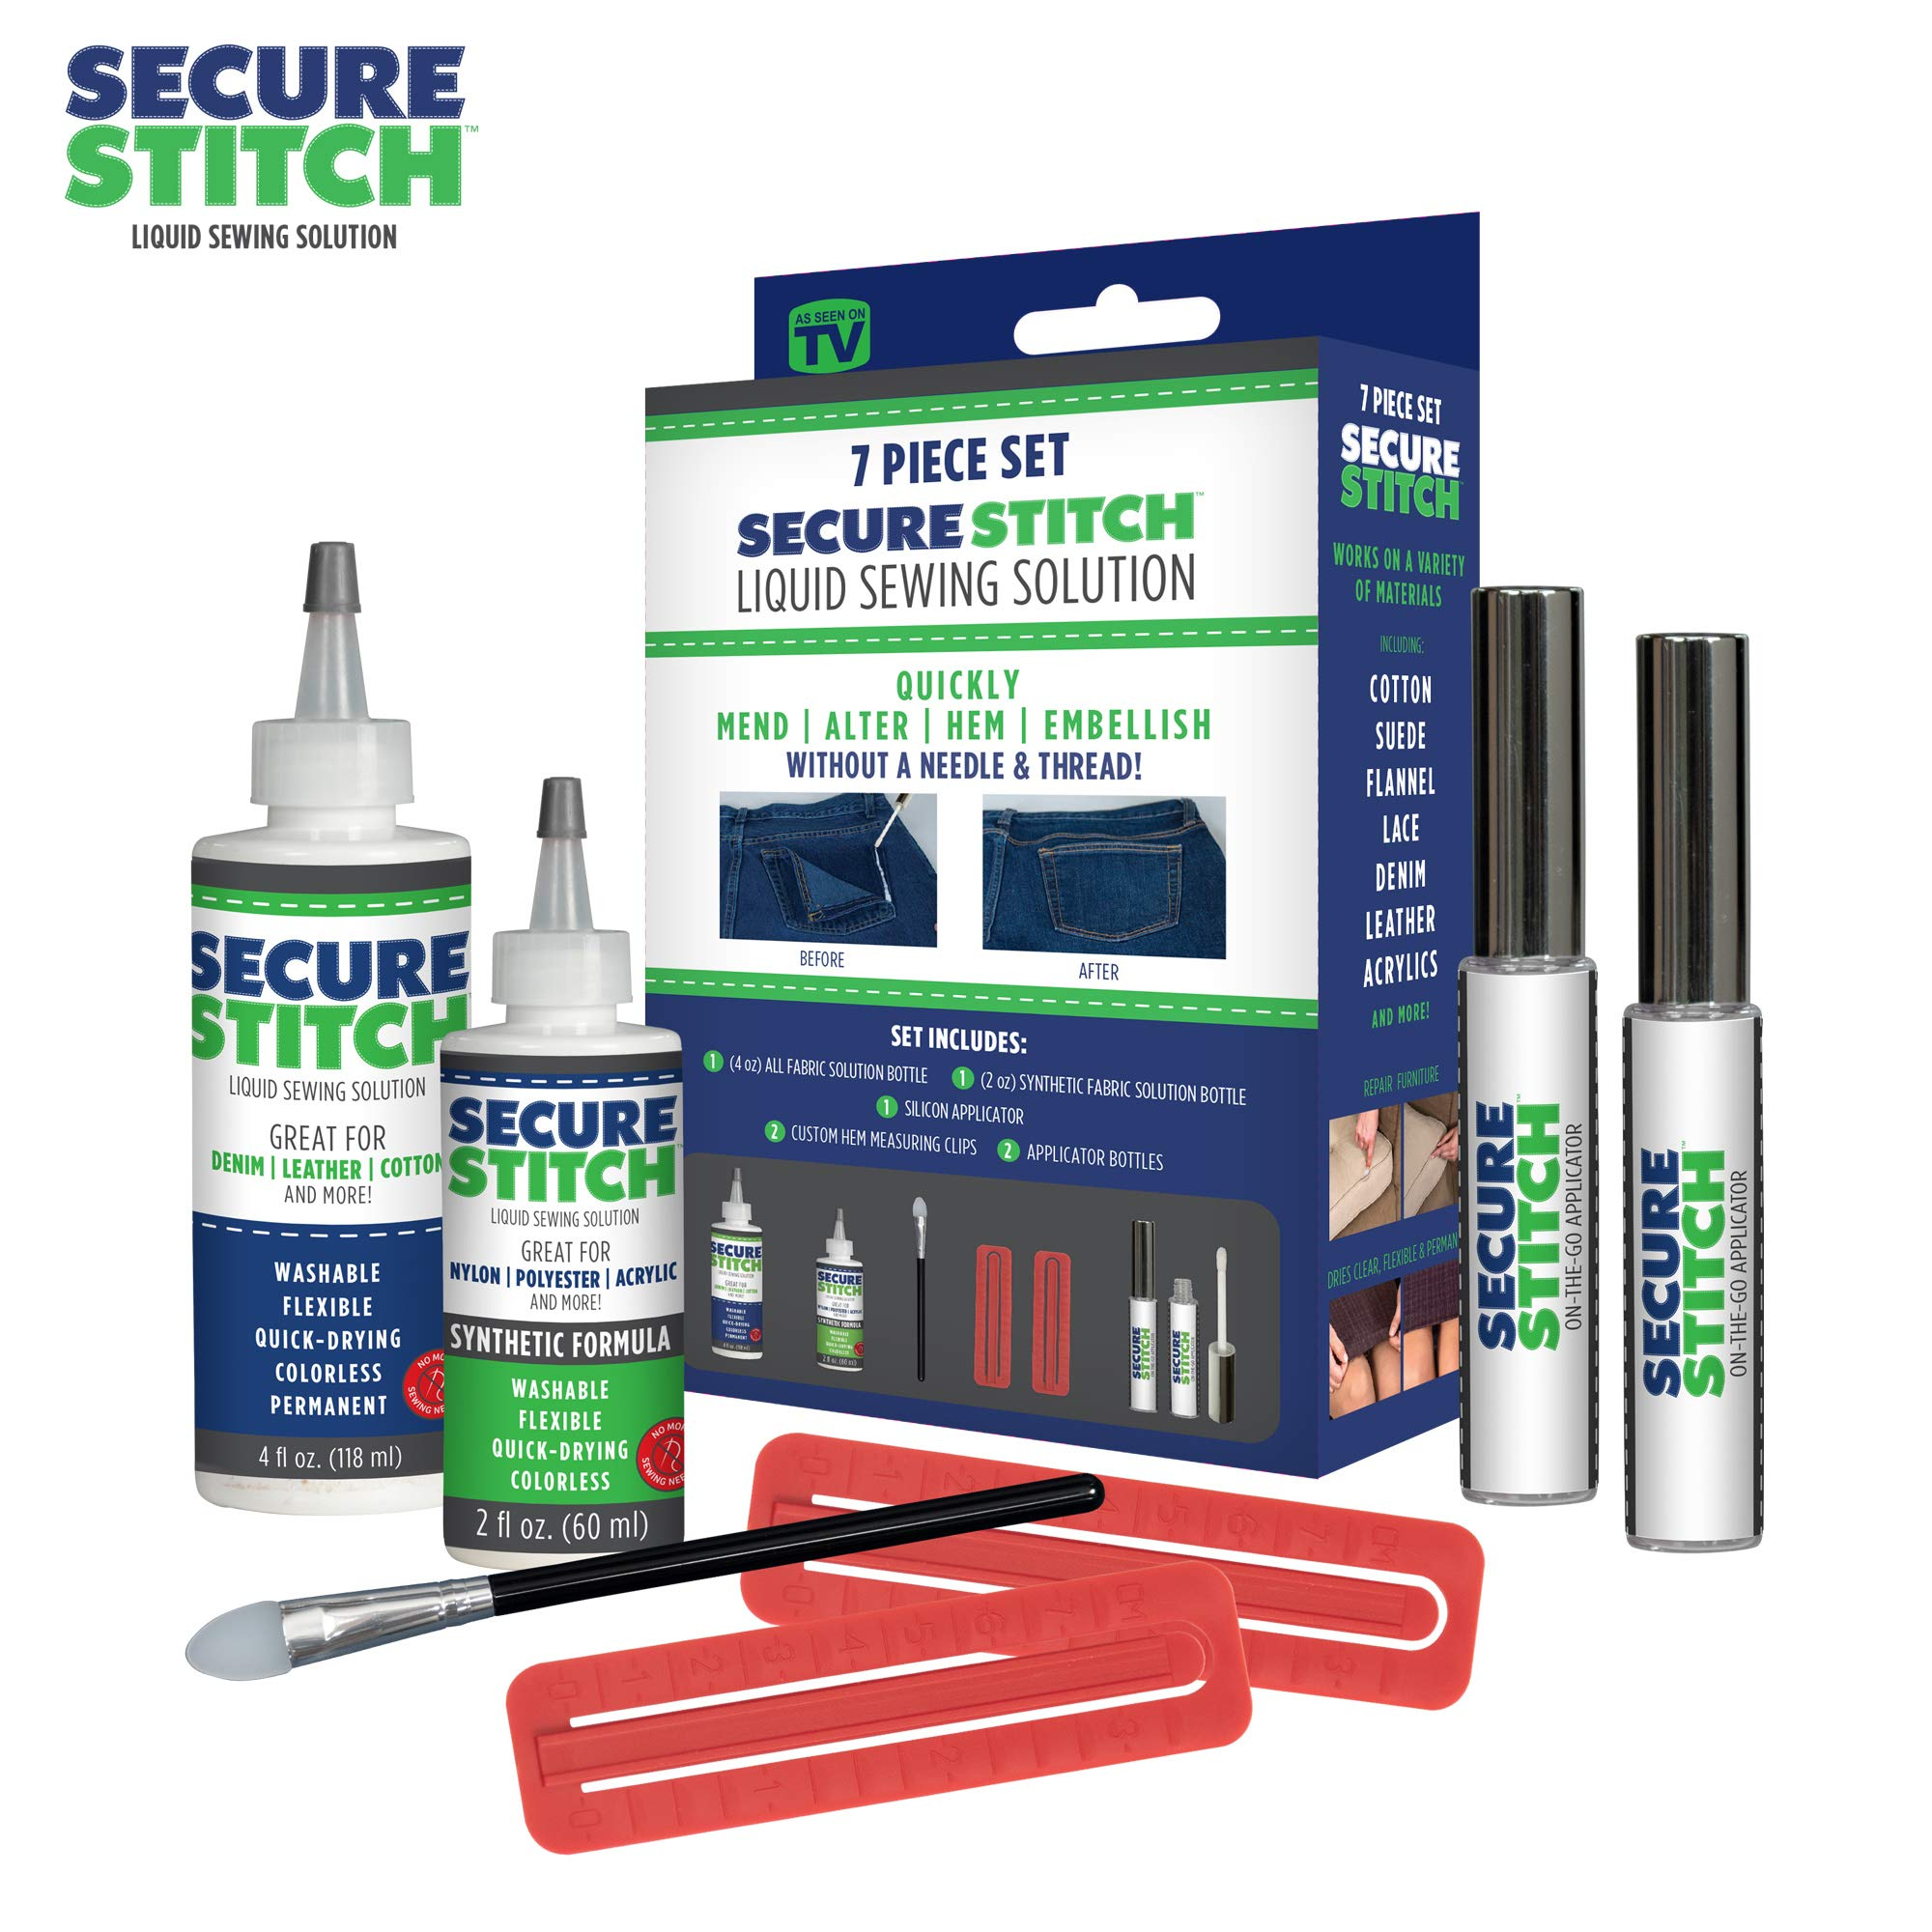 Secure Stitch Liquid Sewing Solution Kit! Fabric Glue That Quickly Mends, Alters, Hems & Embellishes Without a Needle and Thread! Includes: 4oz.Fabric Solution & 2oz All Fabric Solution by Allstar Innovations